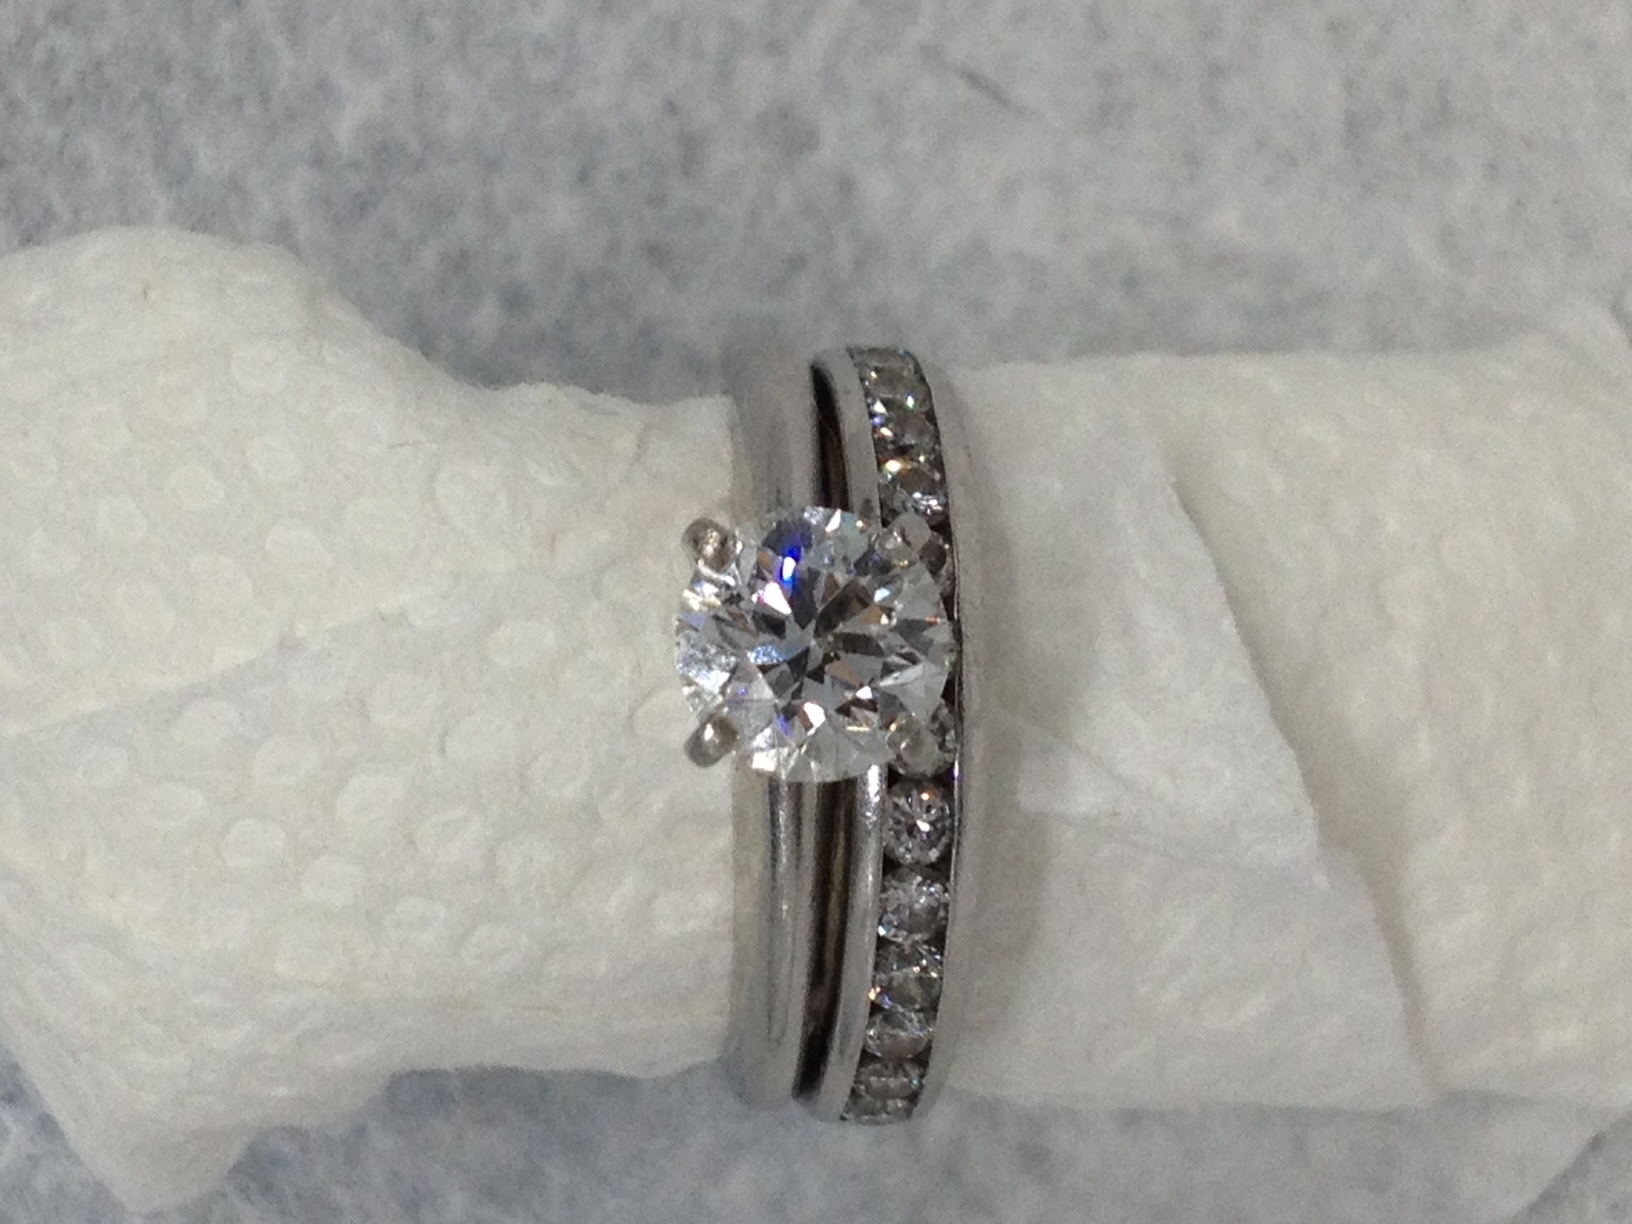 c954fffaf Beautiful solitaire 1.05 carat diamond engagement ring in tiffany platinum  setting with a platinum wedding band containing 14 channel set round  brilliant ...